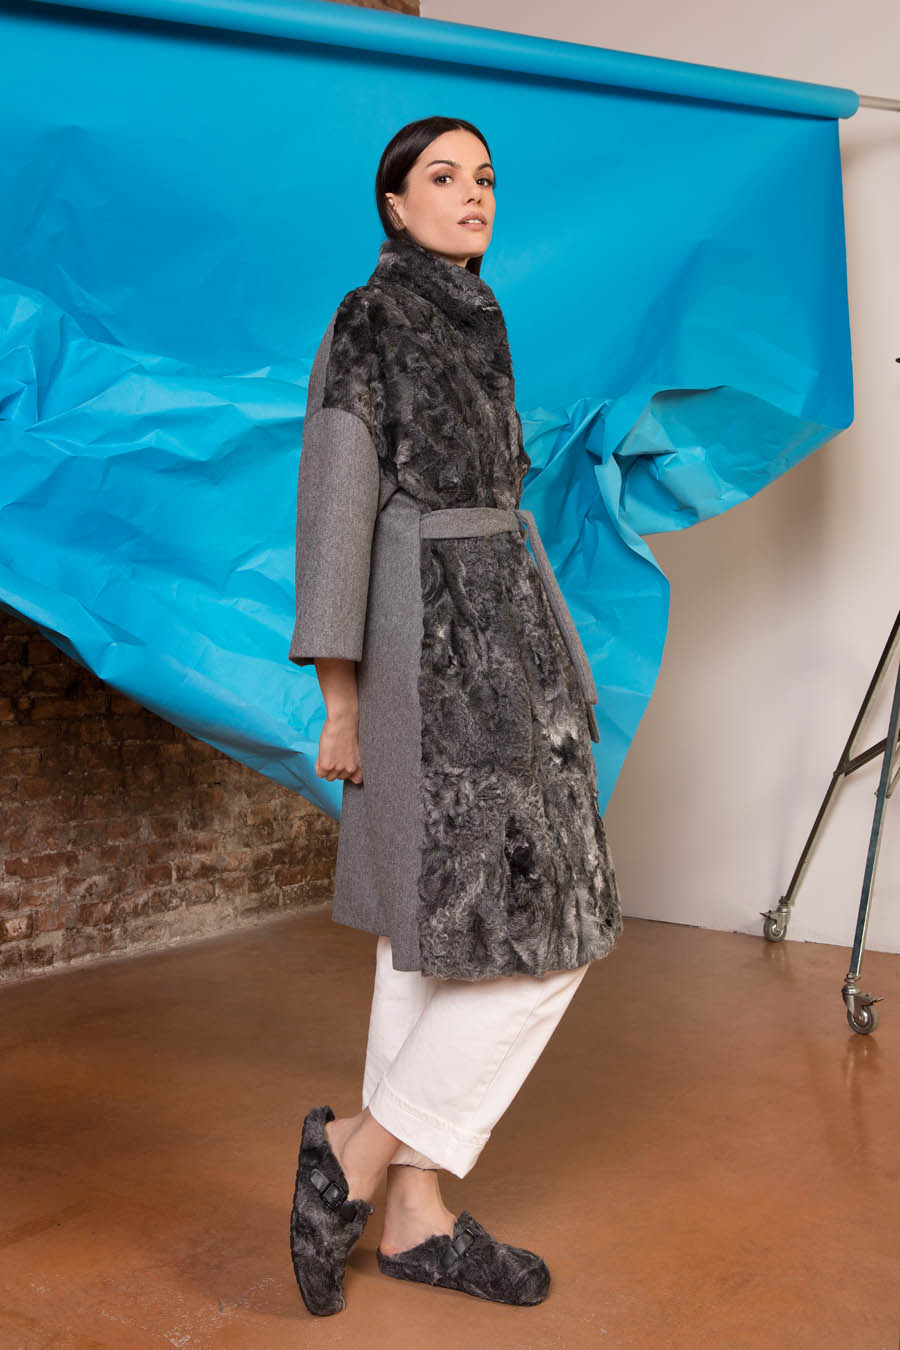 58 P1714P 03 02 giovi pelliccia fur grey - Fall Winter 2019-20